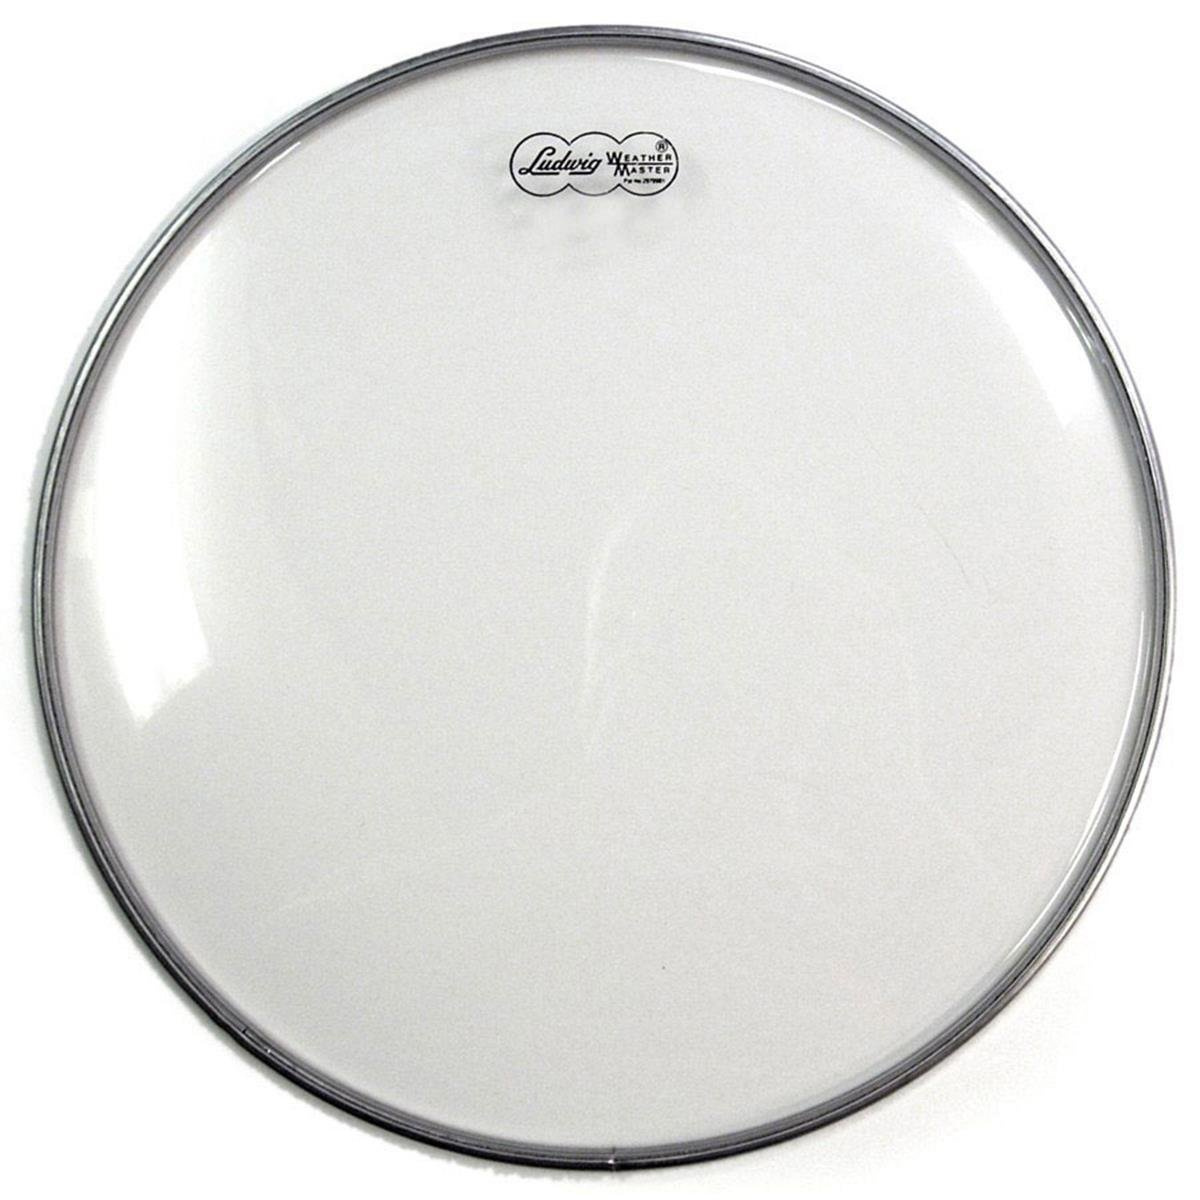 Ludwig weather master 16 heavy clear